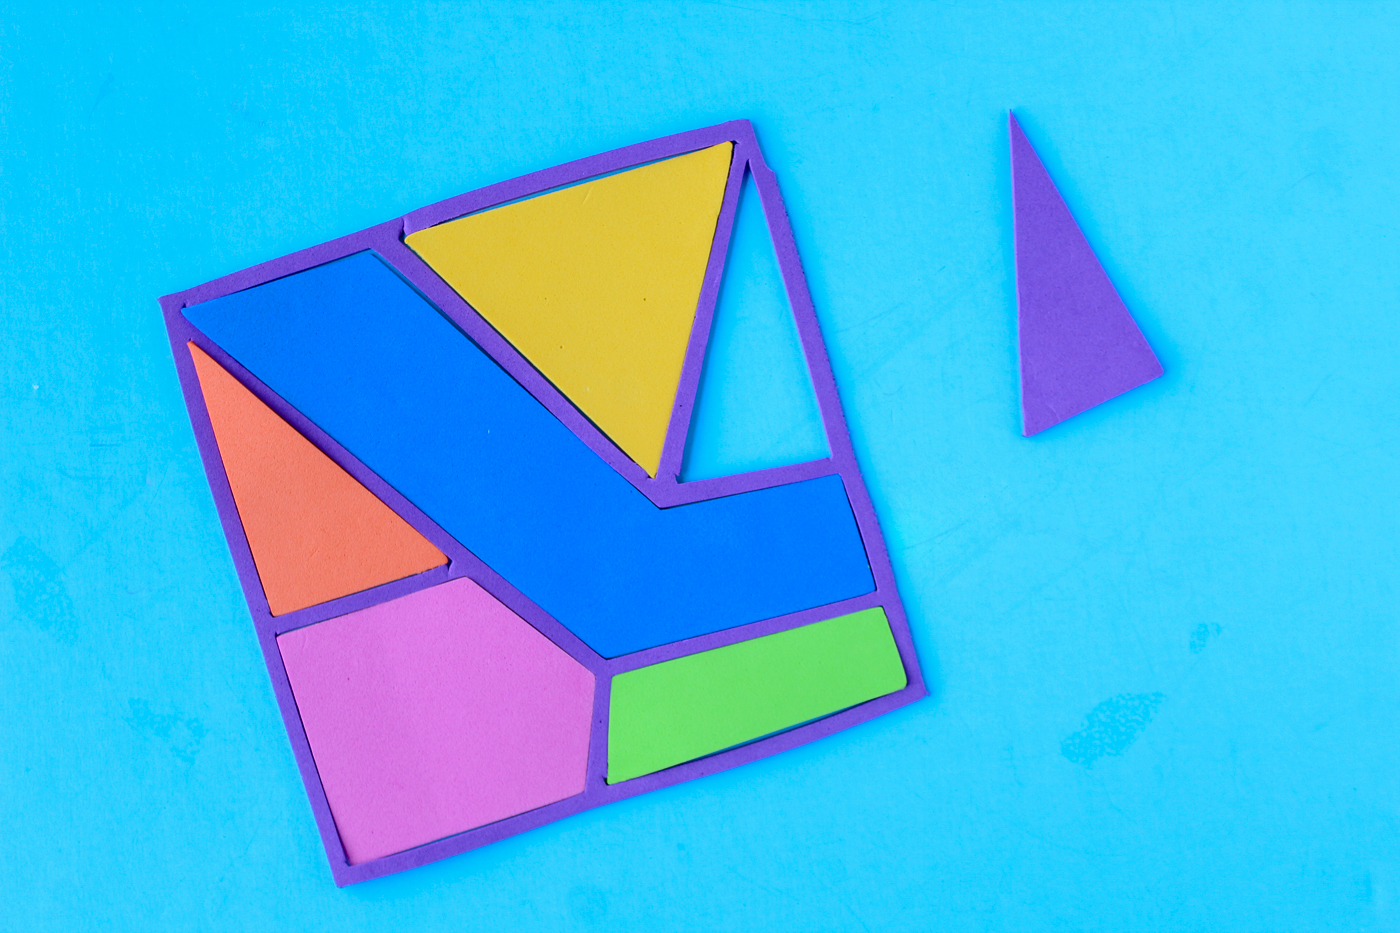 Rainbow Puzzles Pattern and Tutorial is a great way tofun activity with you that is fun for the kids but also stimulating and great for their brains! You can make these from tons of different materials to make it a fun sensory experience as well! #kidscrafts #learningcraftsforkids